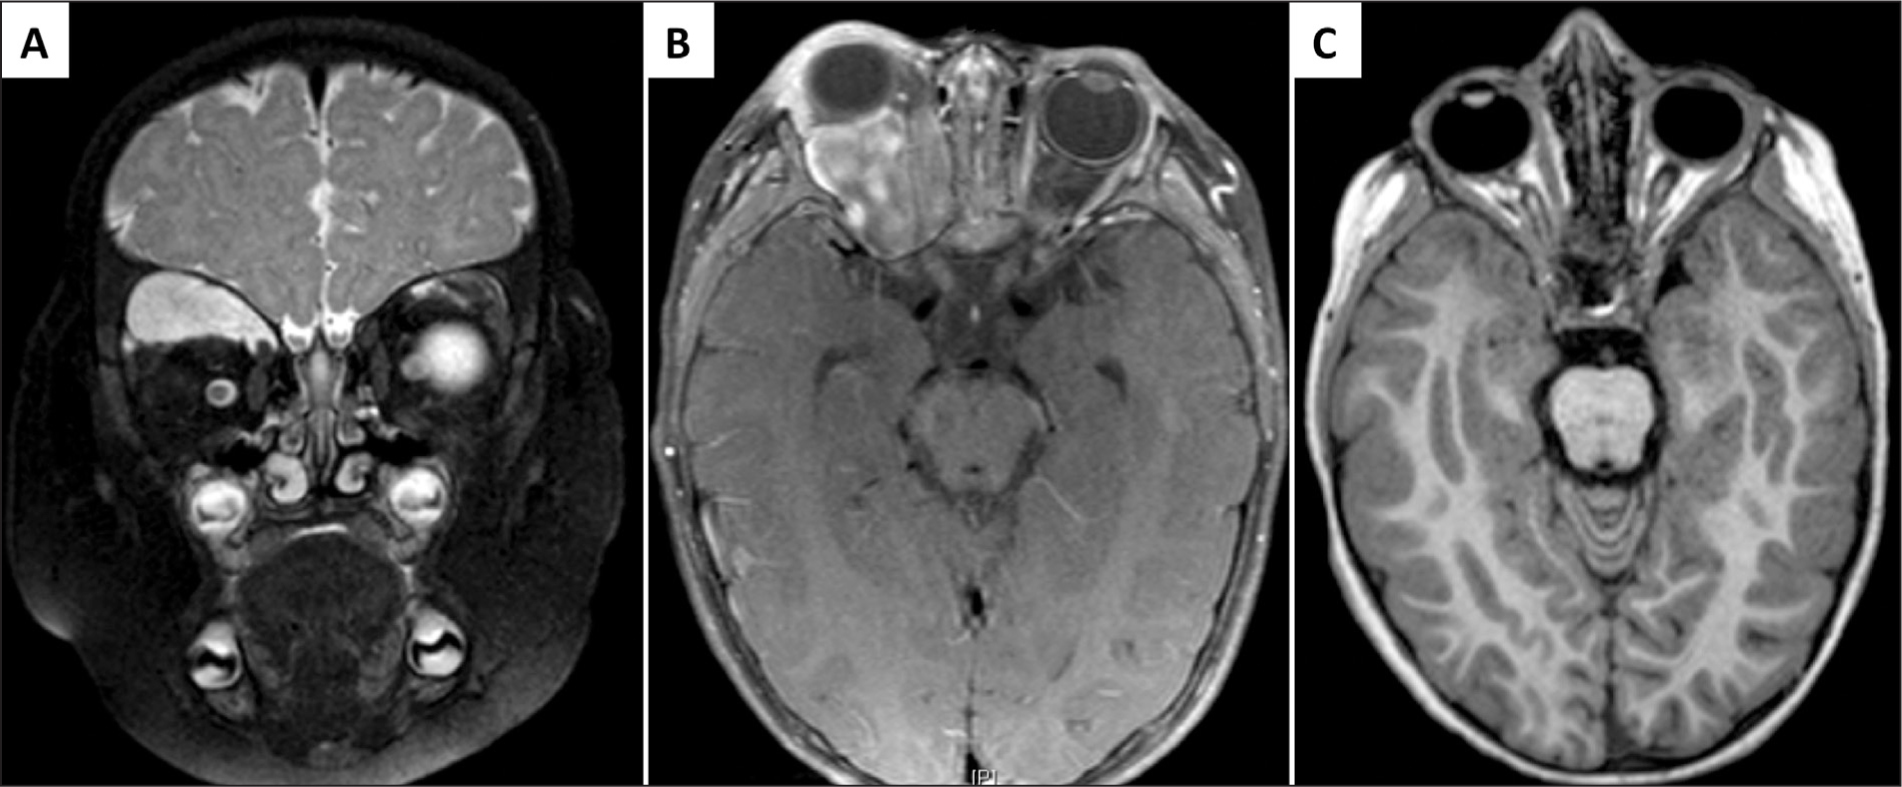 (A) T2-weighted magnetic resonance imaging (MRI) showed a T2-bright mass. There was osseous remodeling of the right orbit, but no bone invasion. (B) Repeat MRI 5 months later (fat-saturated contrast-enhanced T1-weighted) demonstrated a 4.3 × 2.9 × 2.8 cm mass that occupied the intraconal and extraconal space of the right orbit. (C) T1-weighted MRI 20 months after the patient began chemotherapy with no apparent residual tumor.